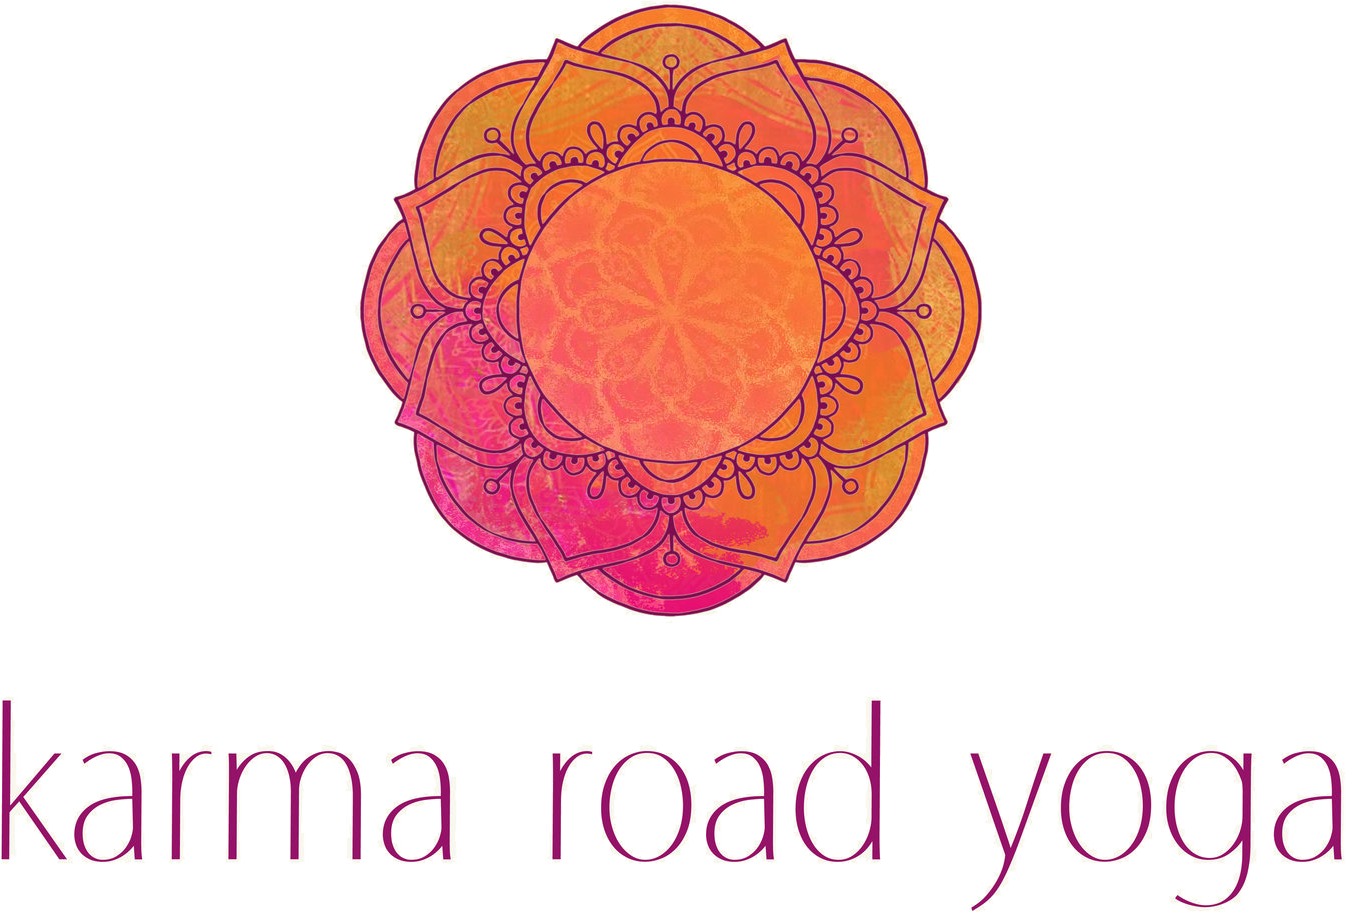 Karma Road Yoga